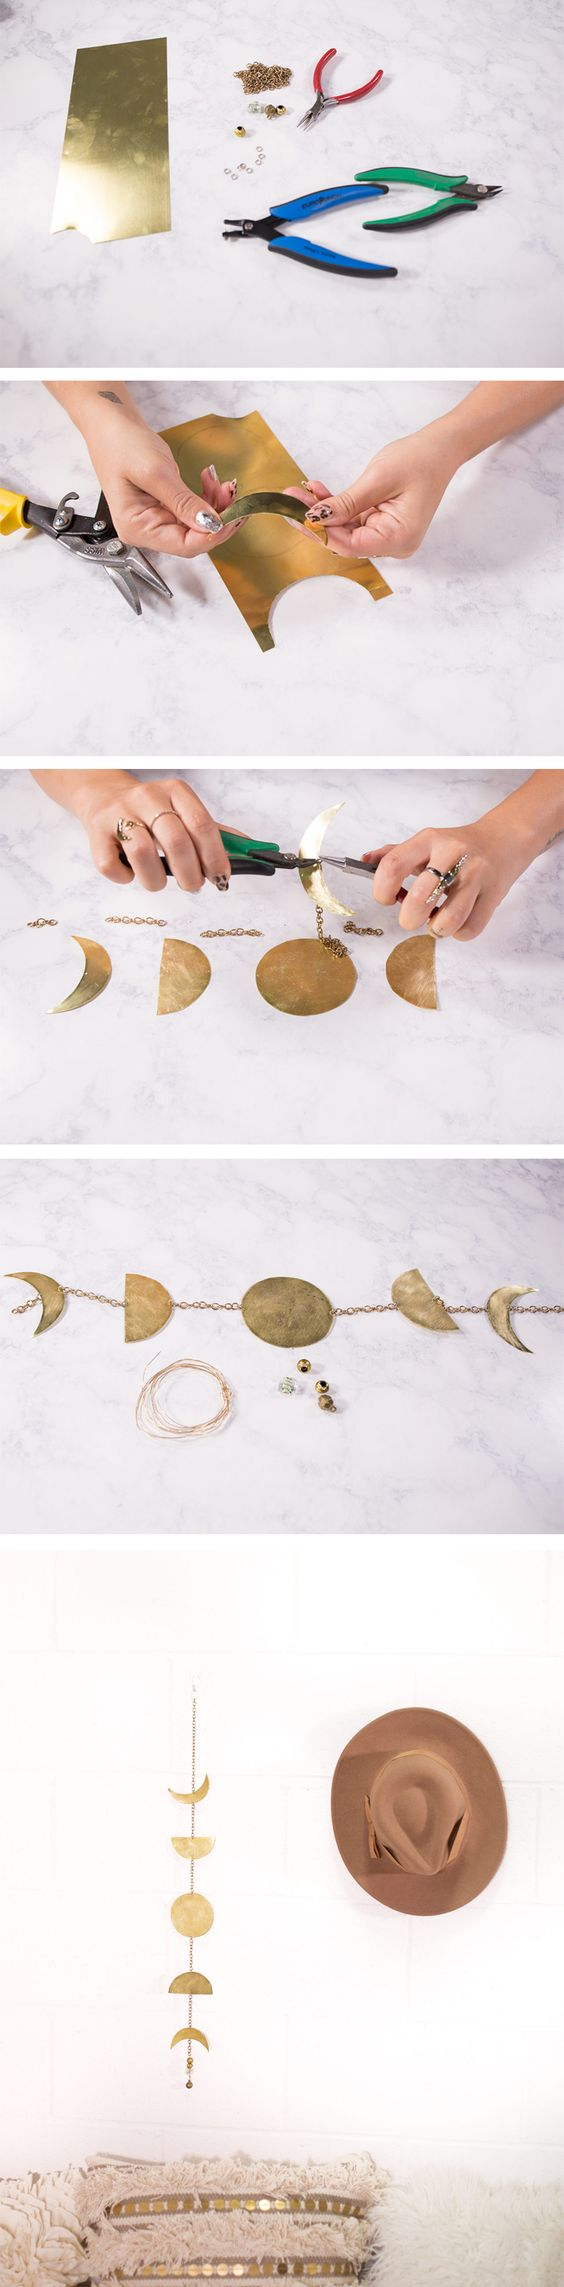 Sheet metal from the craft store & some basic jewelry making supplies are all you need to string together this lovely #DIY lunar home decor!